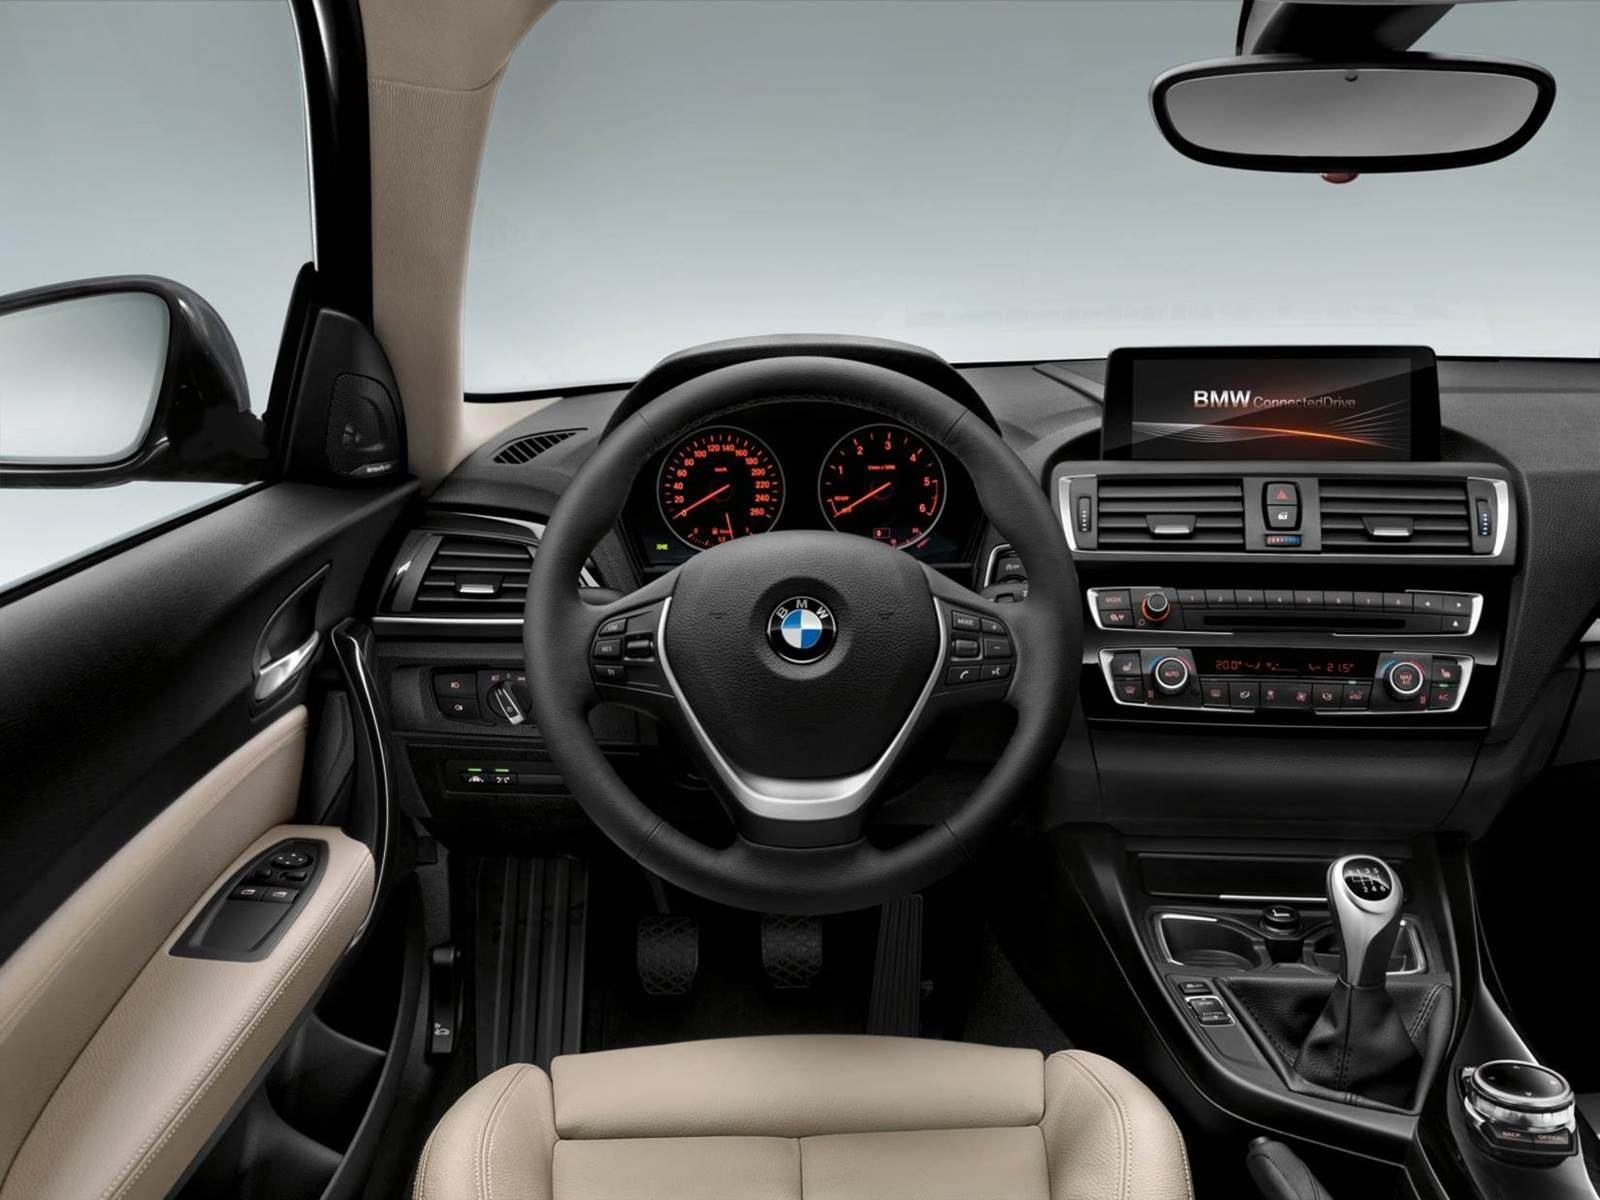 novo bmw s rie 1 2015 com facelift fotos e v deo oficiais car blog br. Black Bedroom Furniture Sets. Home Design Ideas